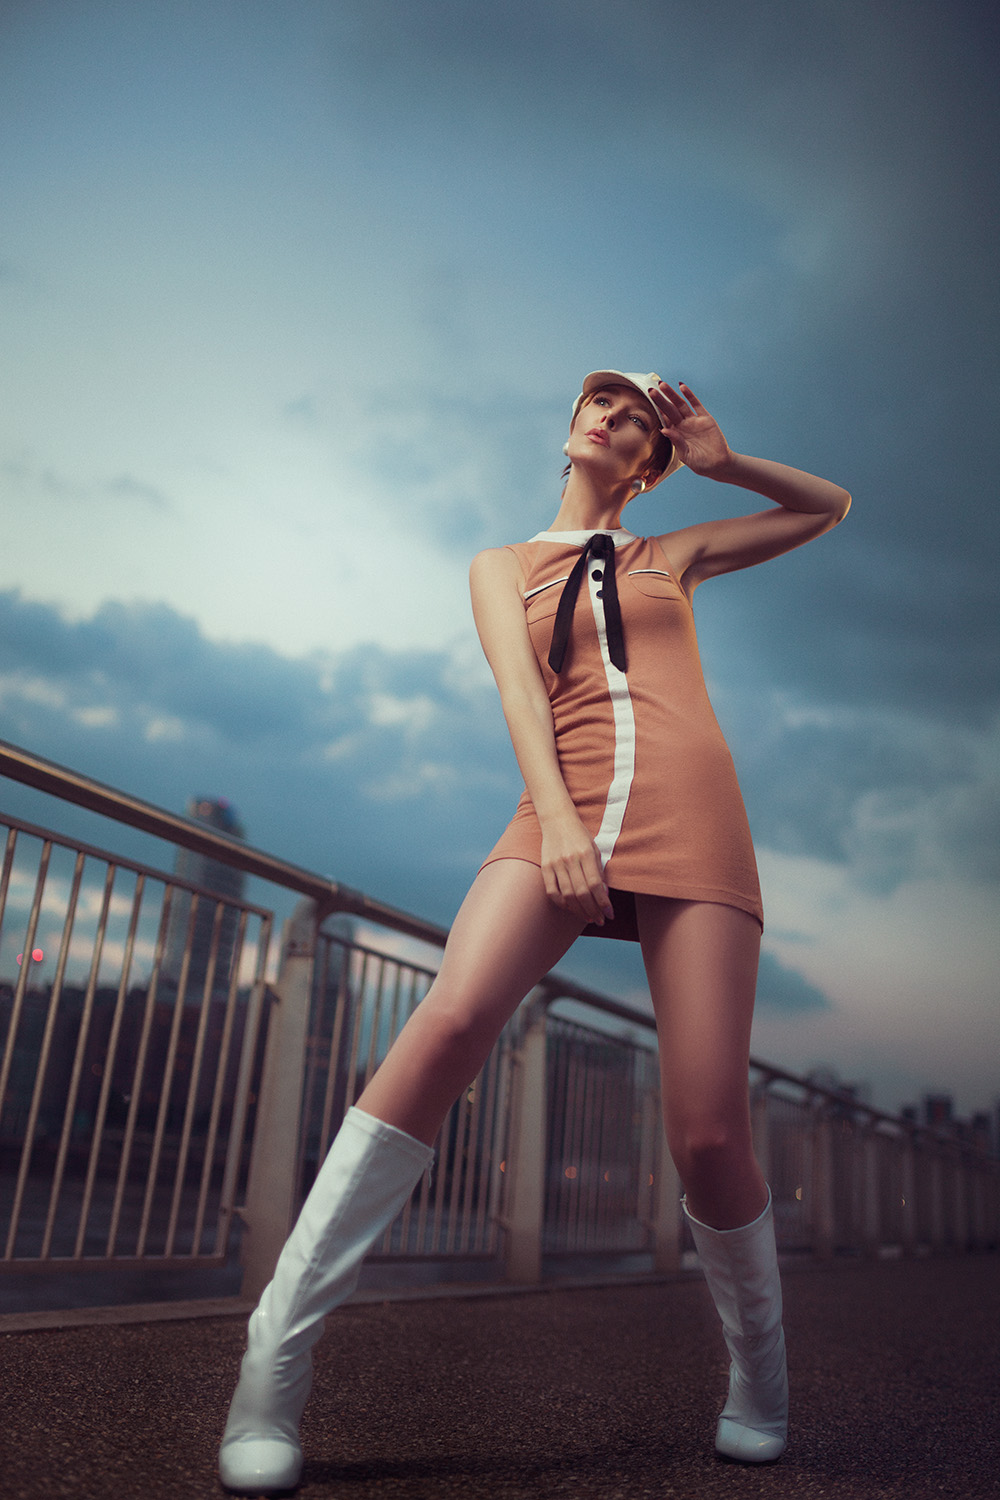 Sixties themed photo shoot taken beside the river Thames.